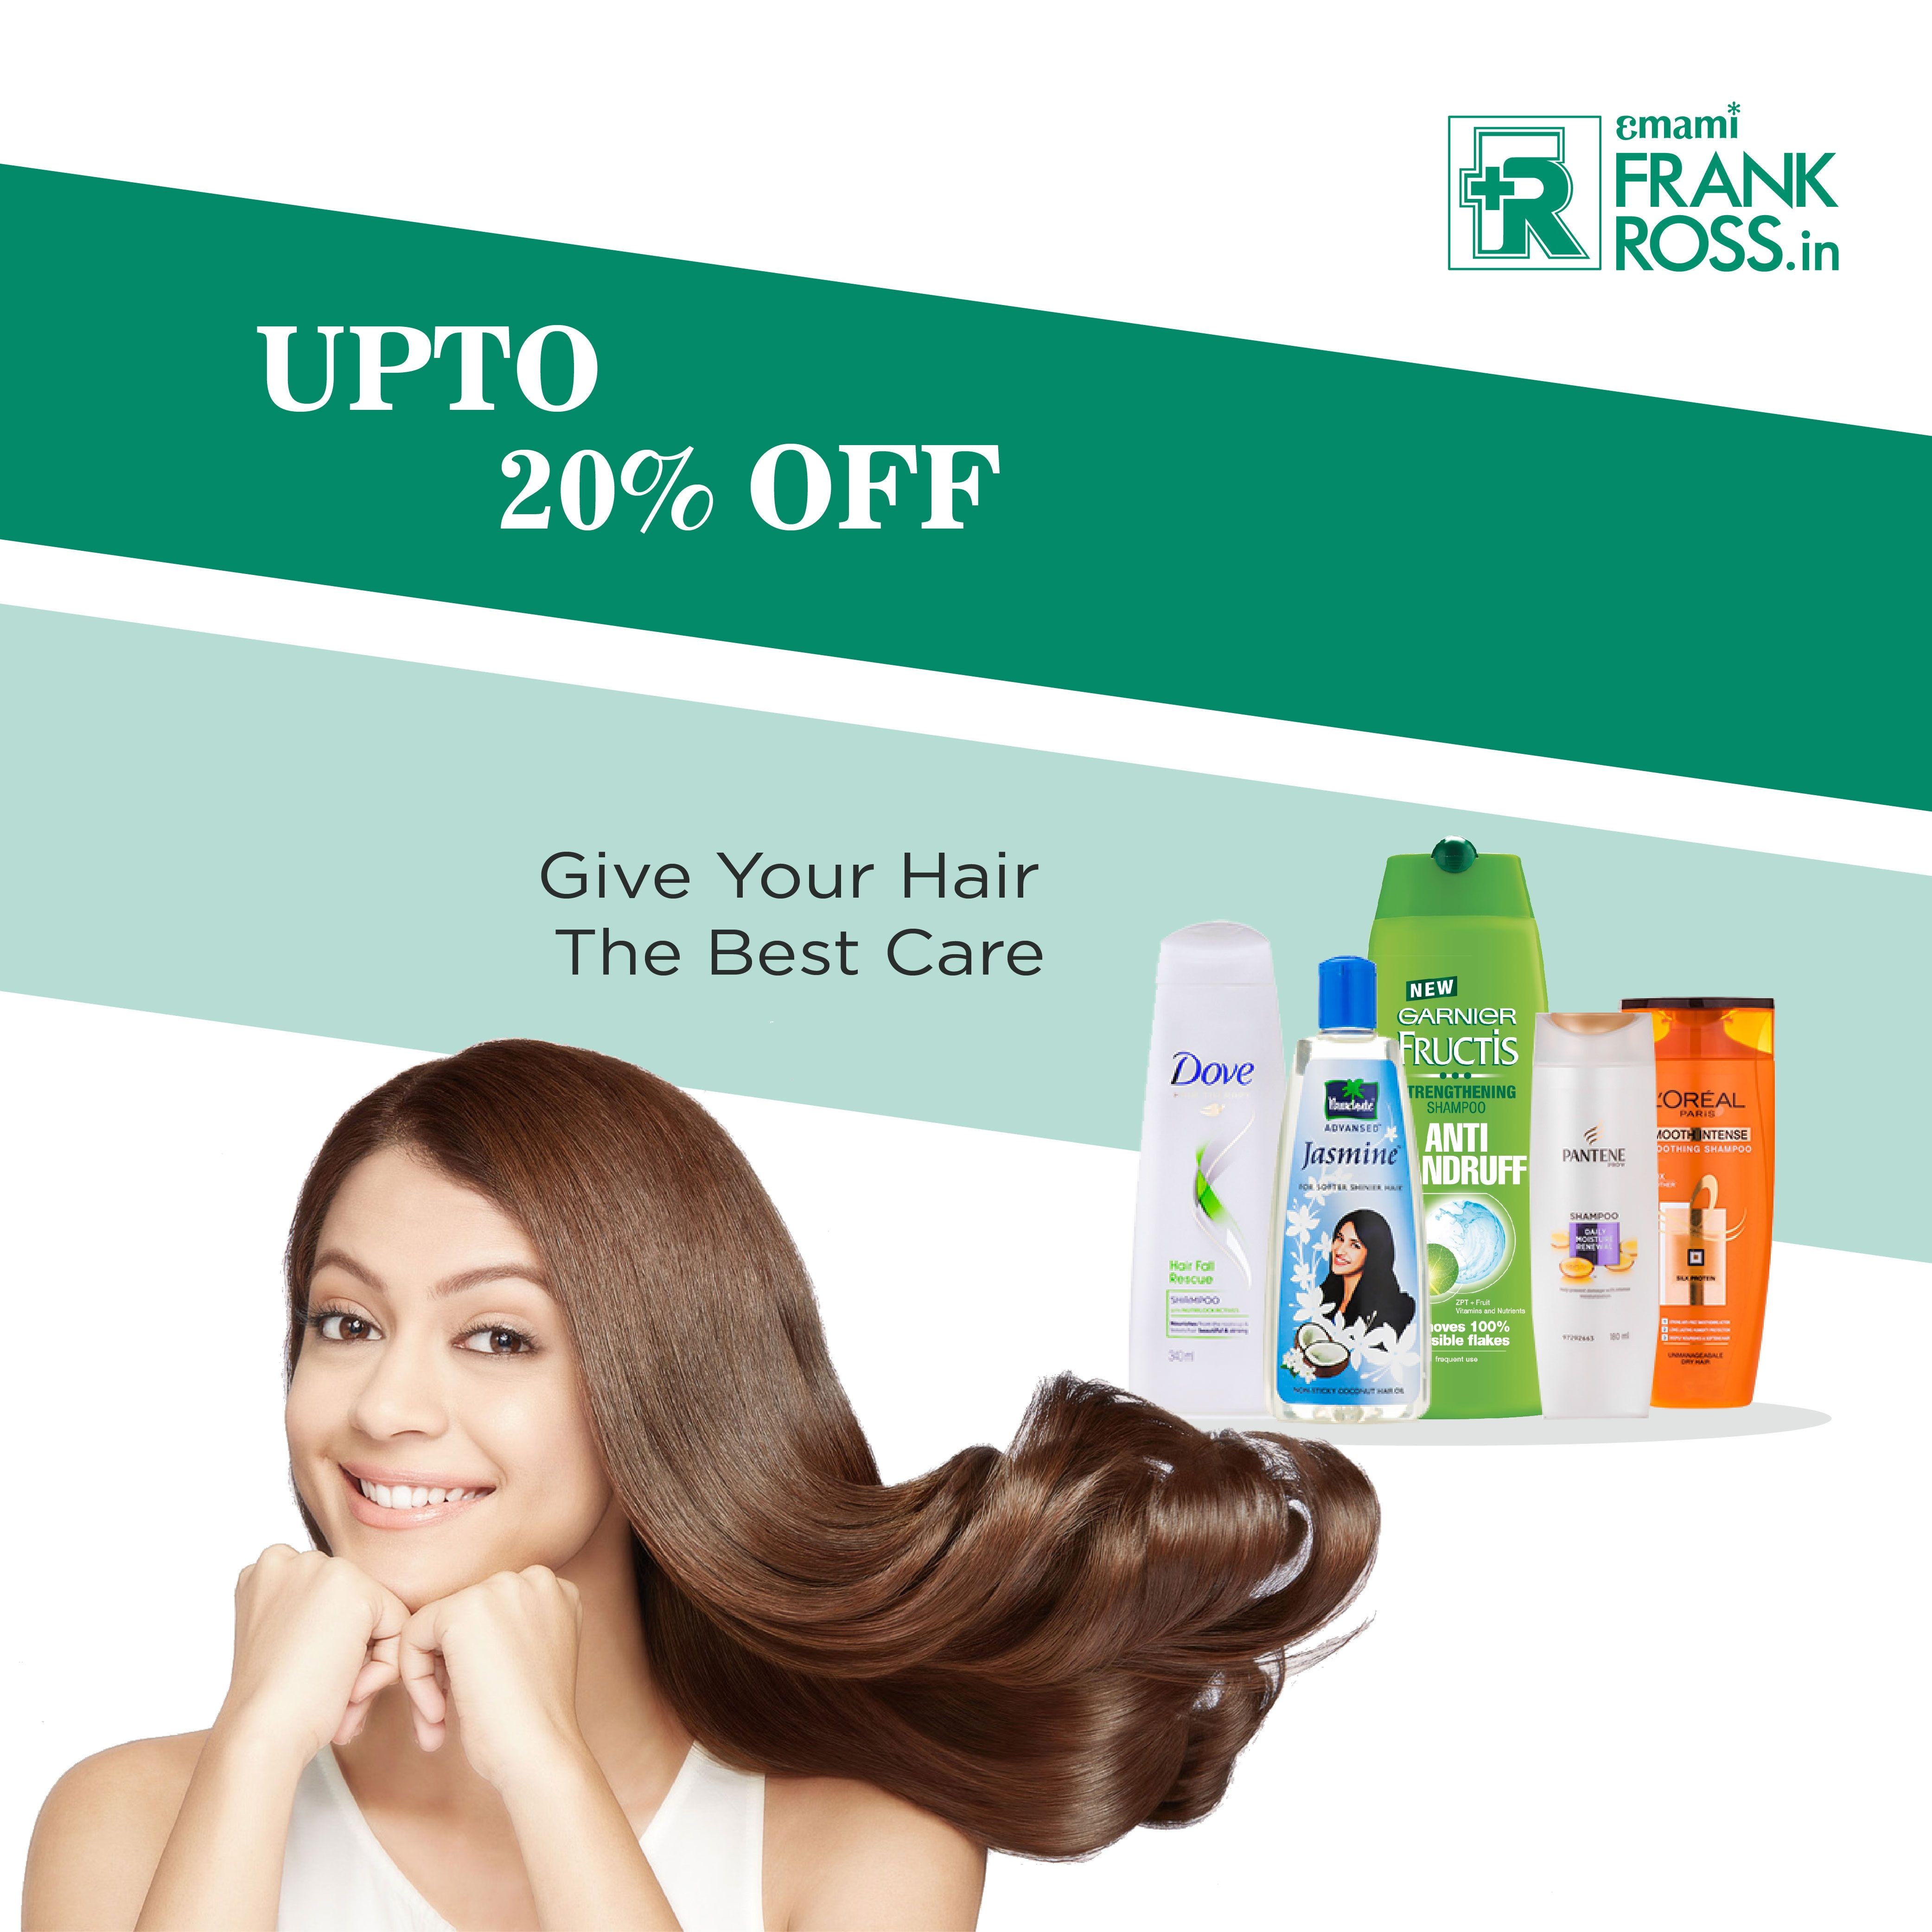 Amazing offer for your beautiful mane. Get upto 20% off on #hair care range on Frank Ross App and website. To shop: Visit: https://goo.gl/g2fI0j iOS - http://apple.co/1M96uCm Android- http://bit.ly/1P76qsr